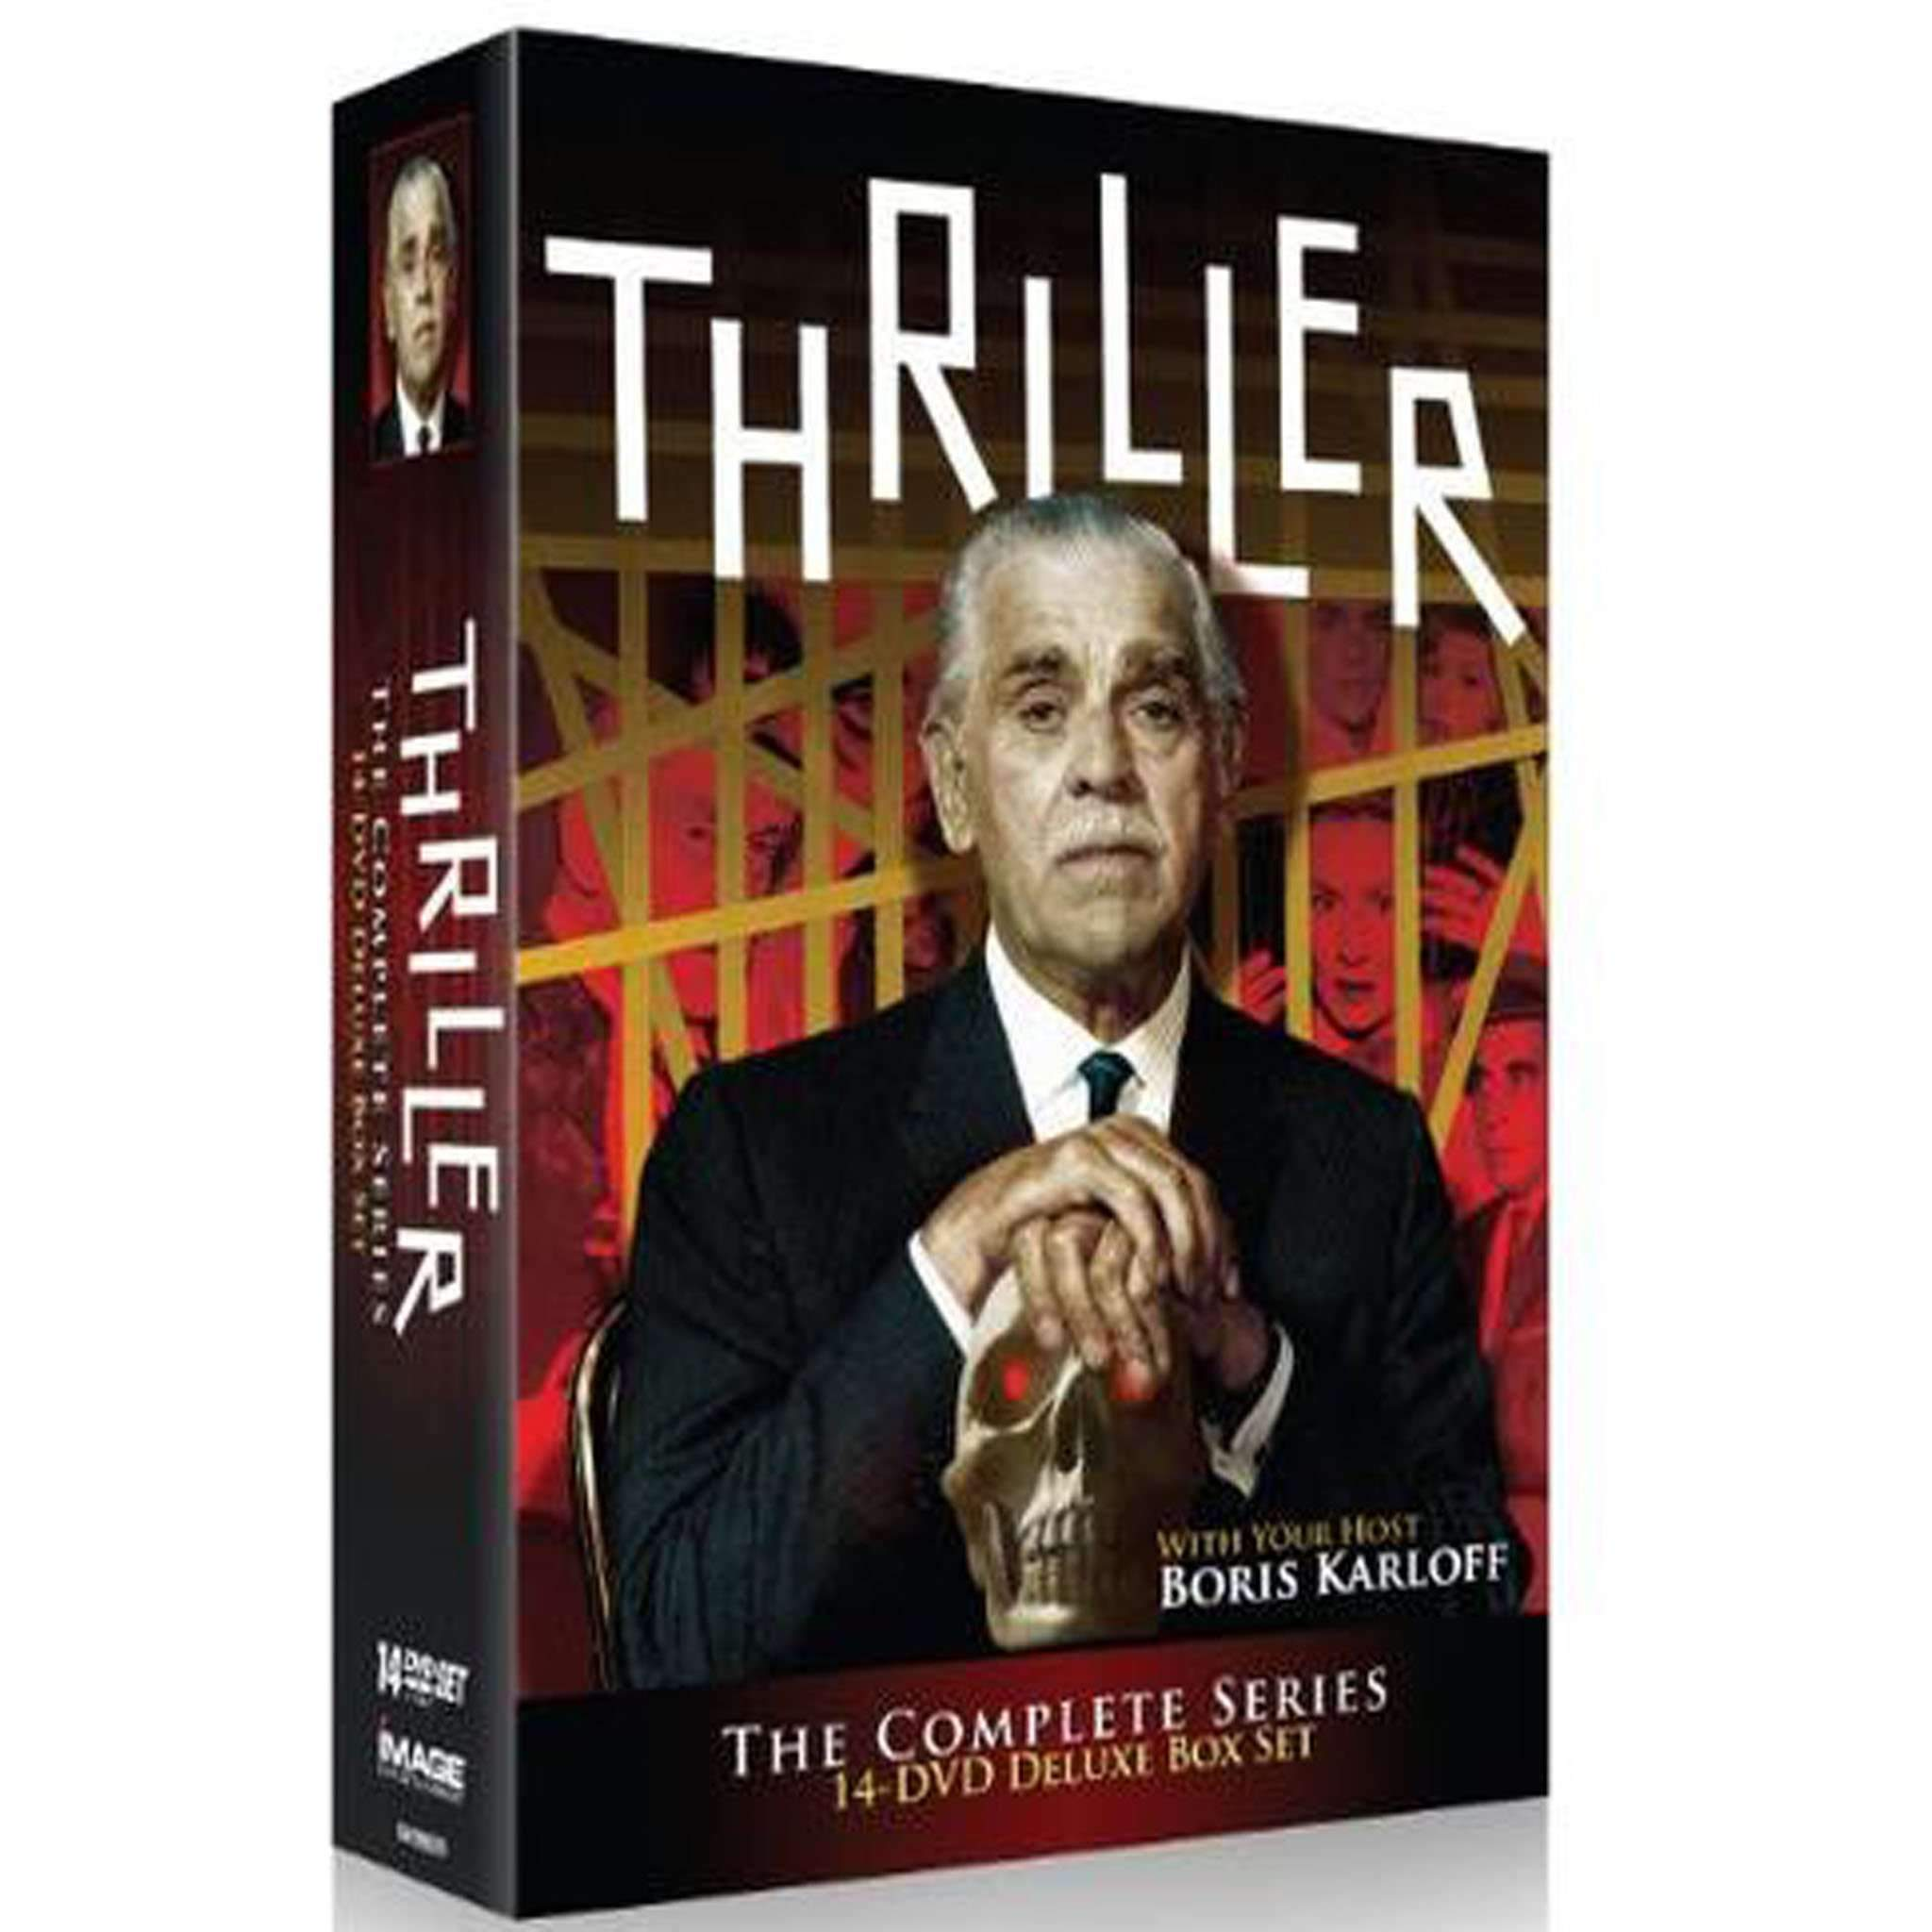 Thriller: The Complete Series (2010, 14-Disc Set) (DVD) NBC Universal DVDs & Blu-ray Discs > DVDs > Box Sets